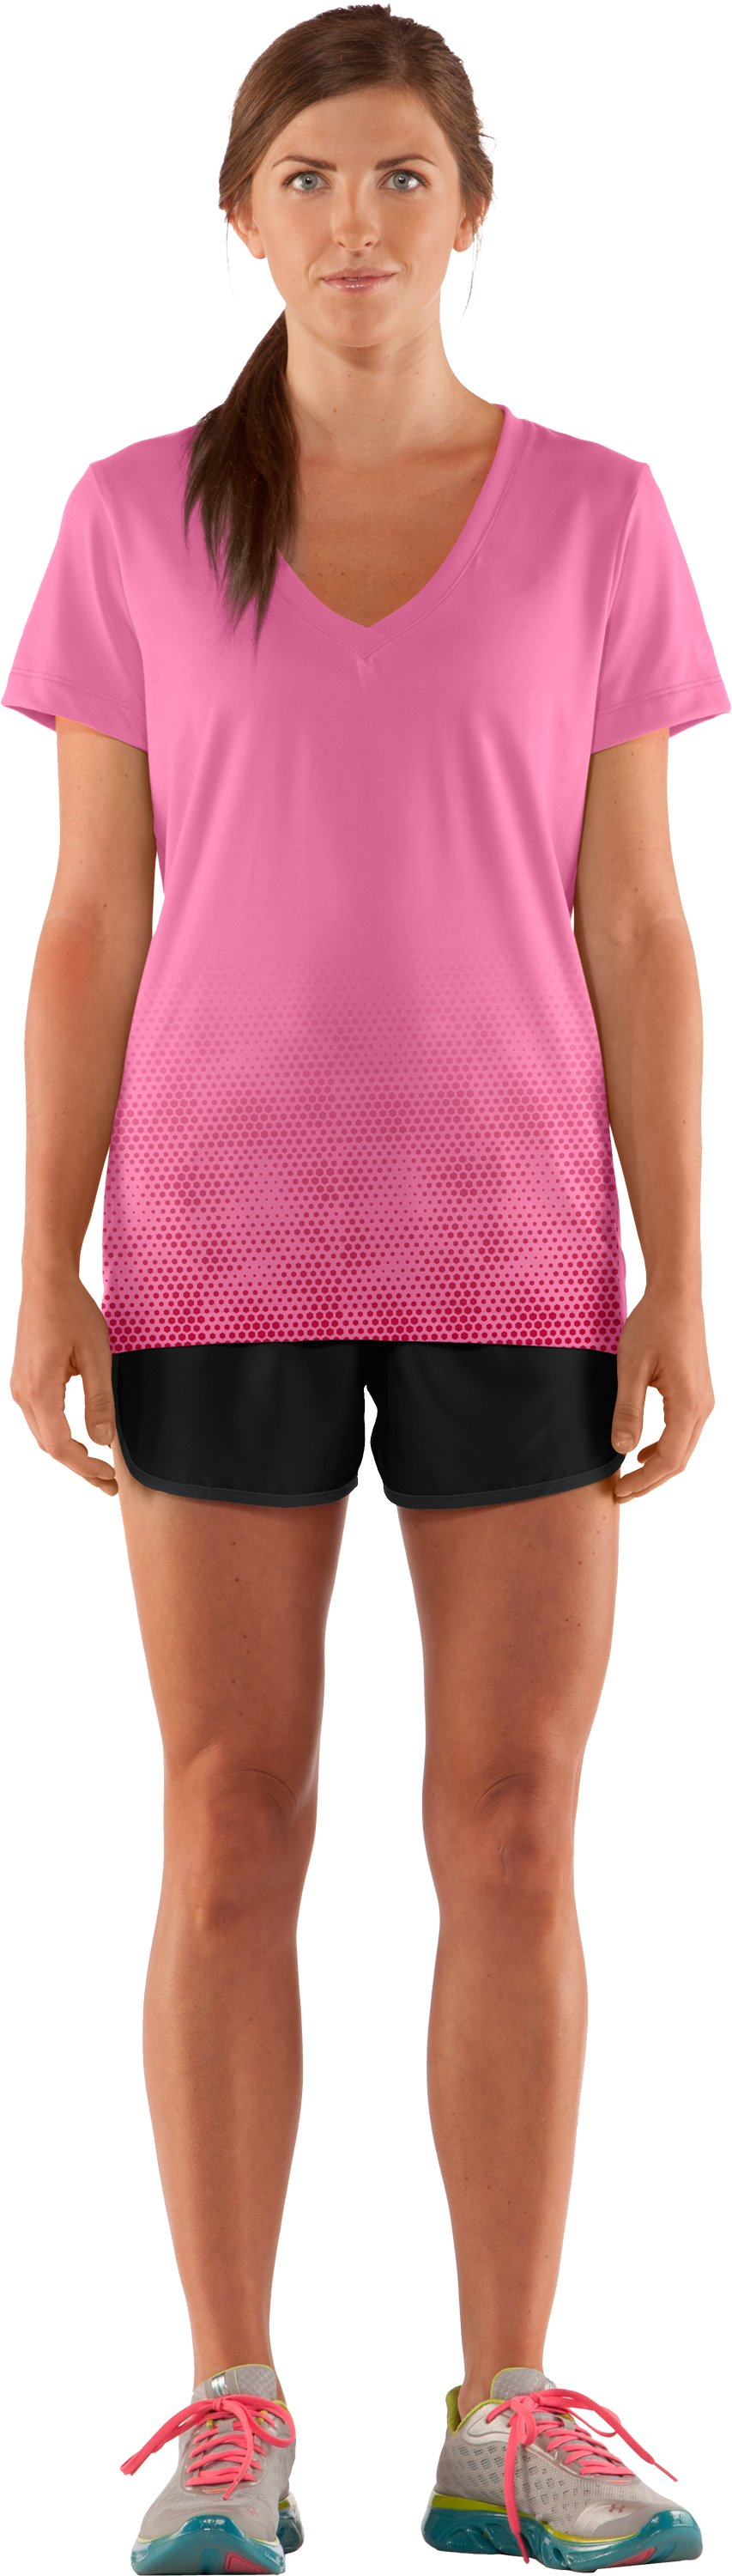 Women's Get Going V-Neck, Fluo Pink, Front